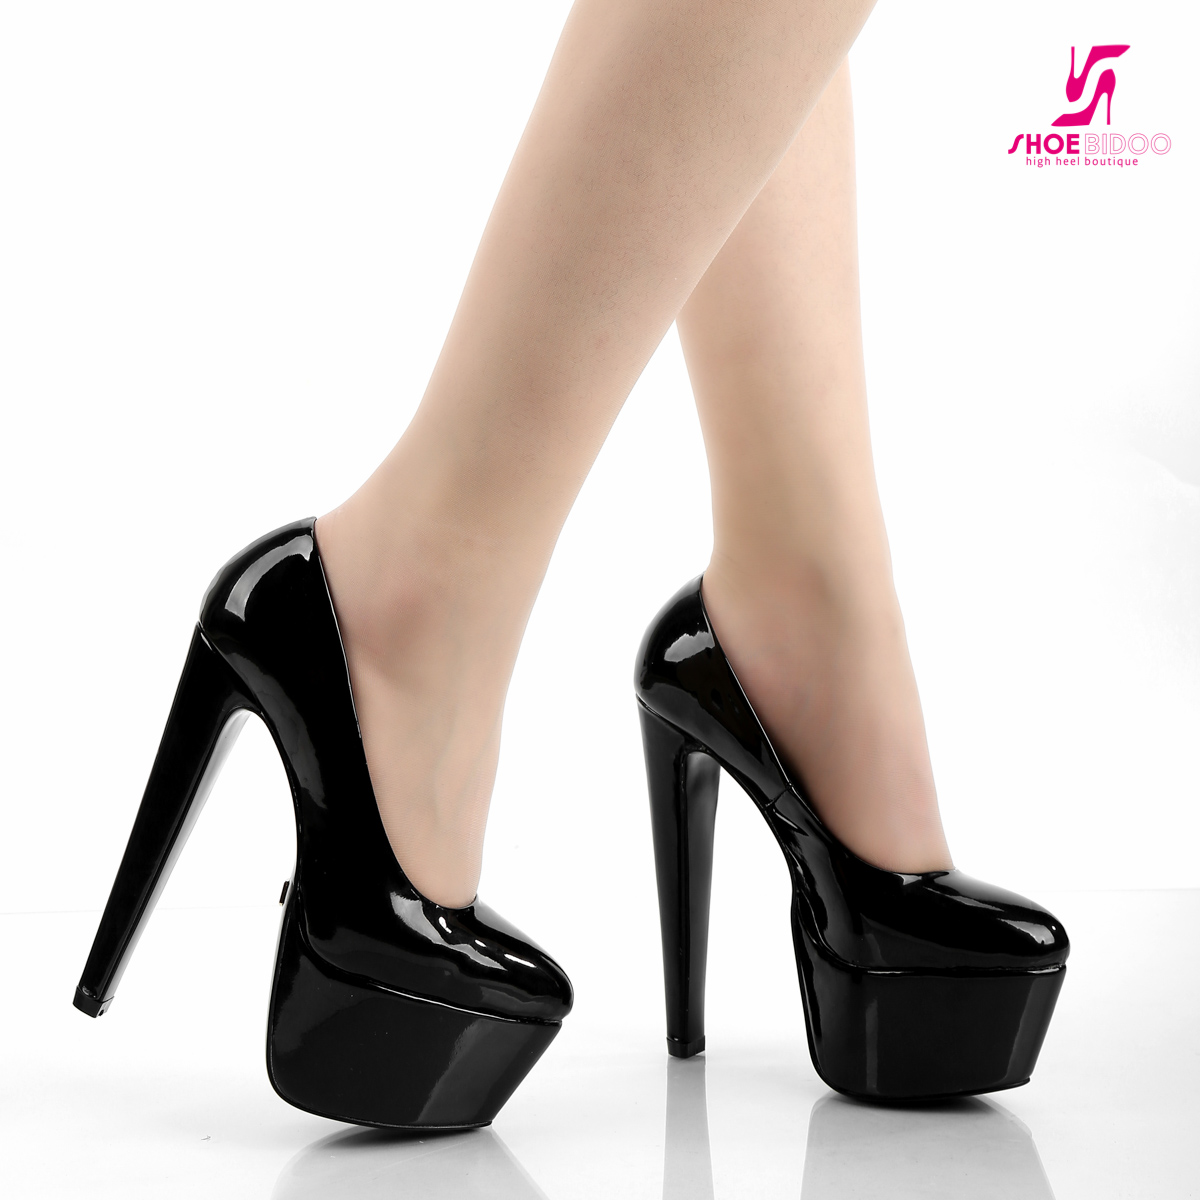 f5f434877cc DESTROYER models (chunky platform heels). These pumps and boots ...